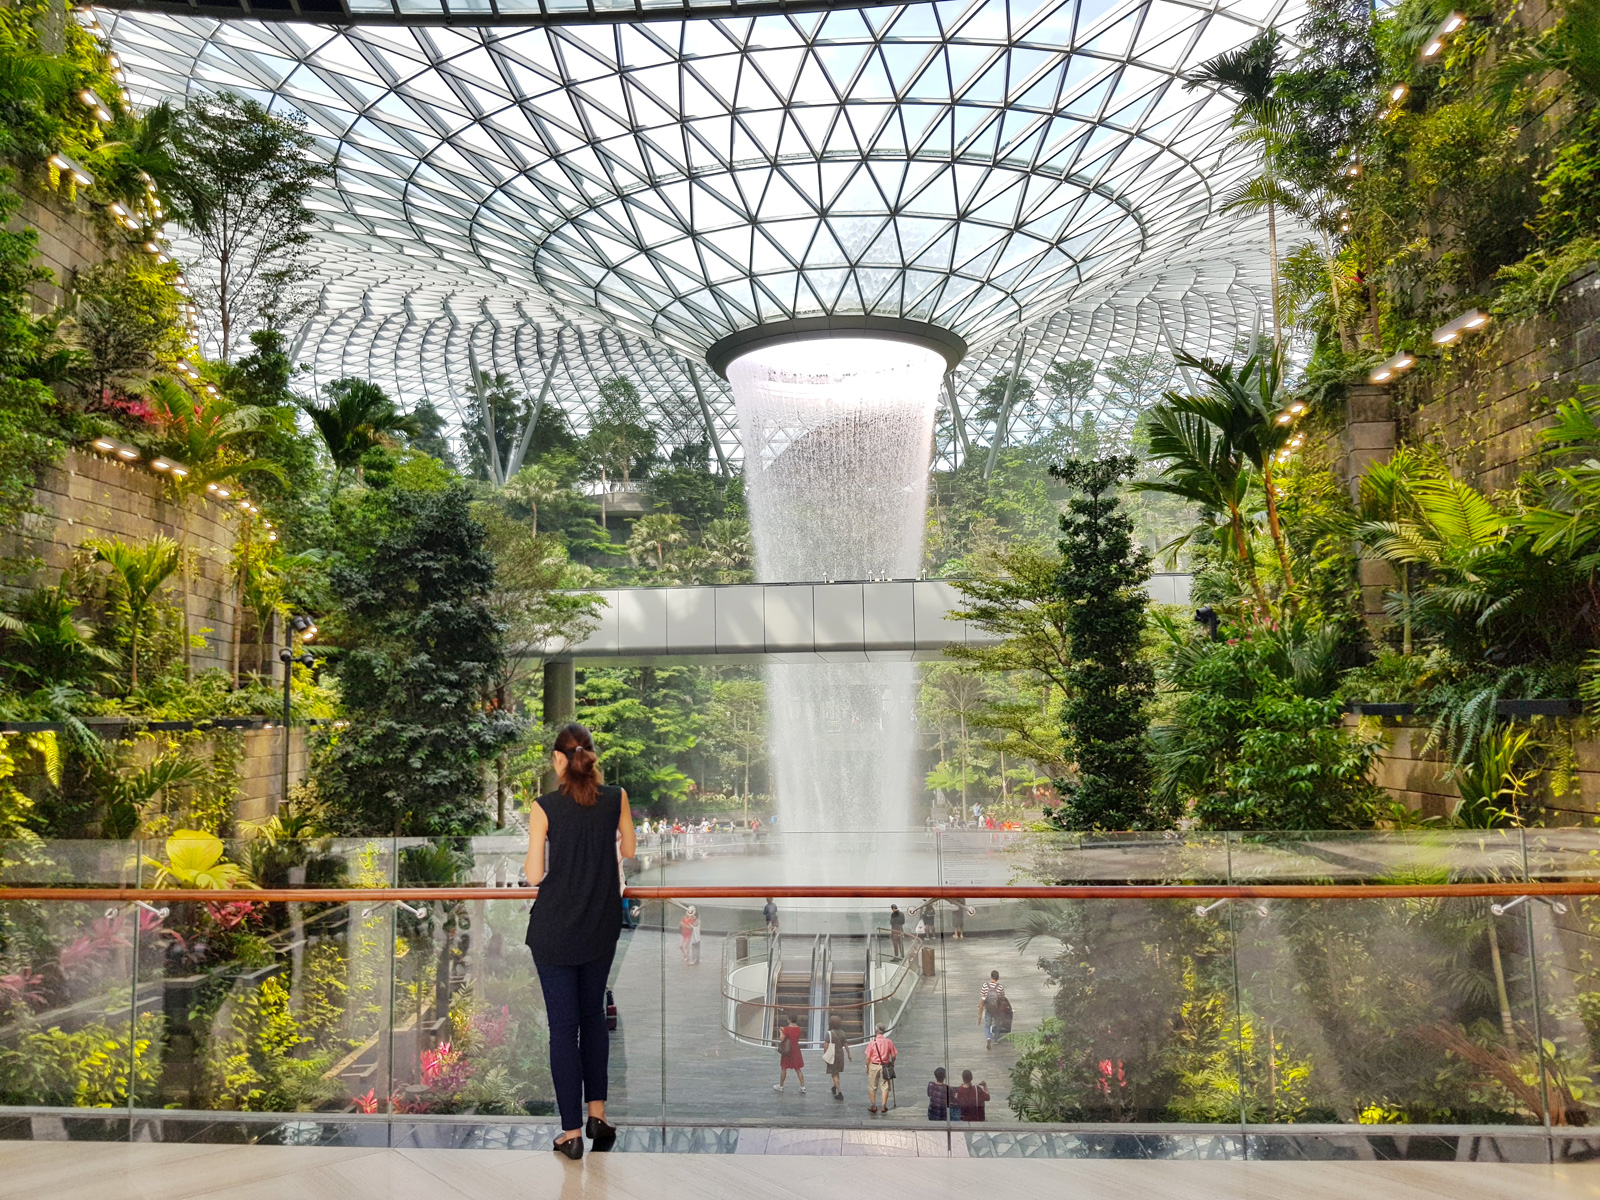 The Jewel at Changi Airport in Singapore